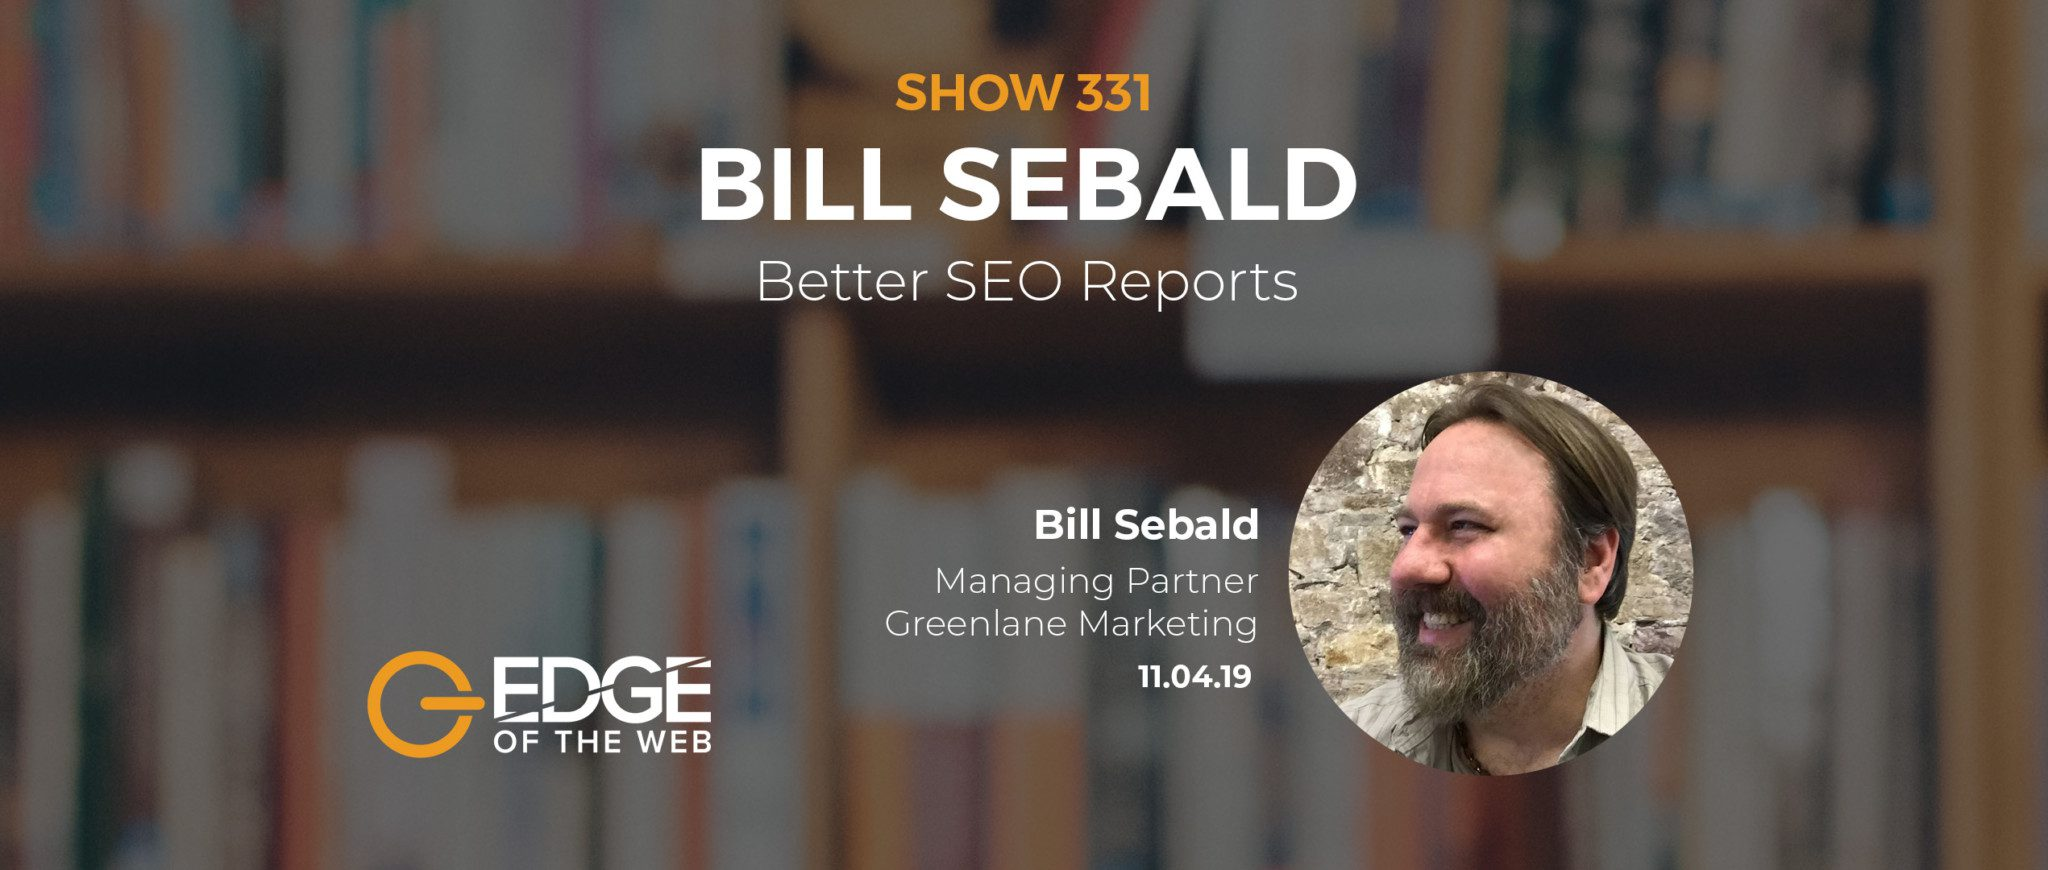 Show 331: Better SEO Reports, featuring Bill Sebald